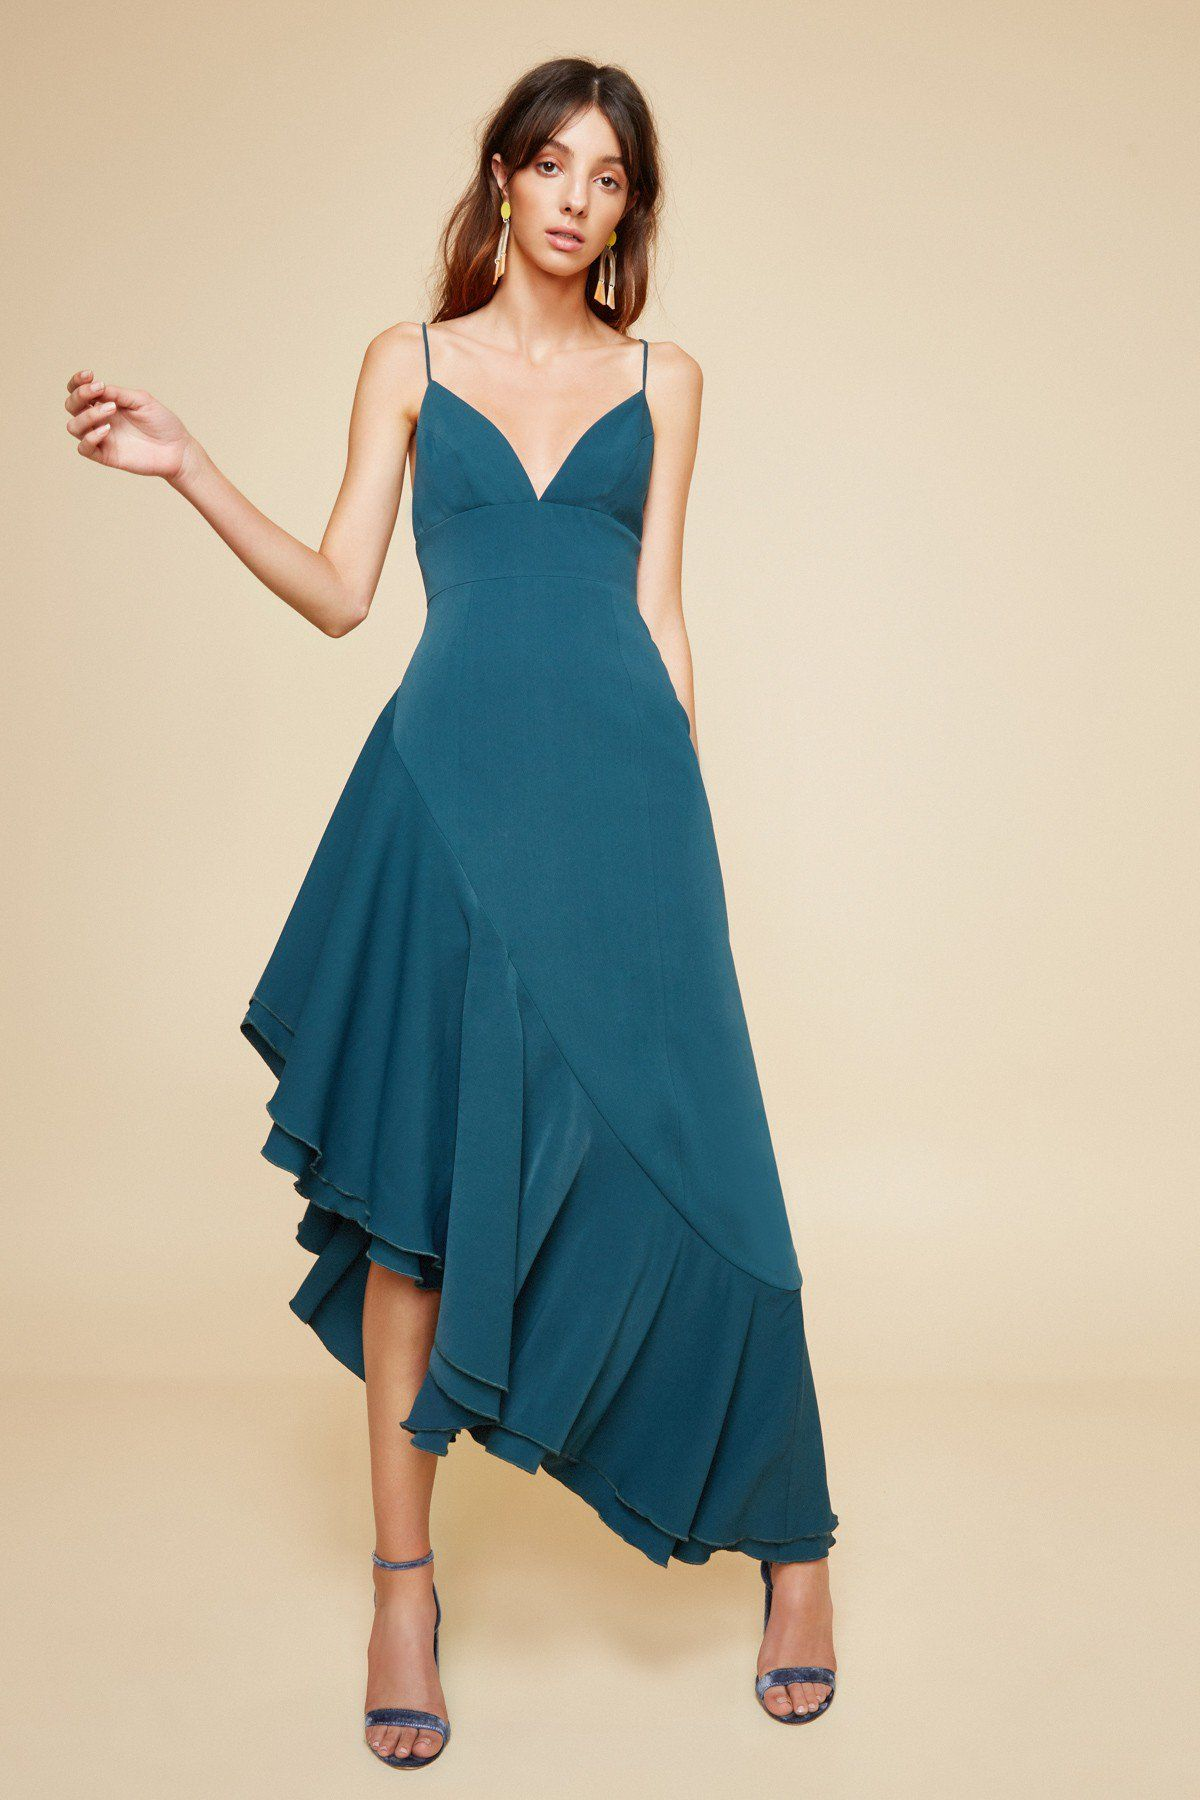 Temptation short sleeve gown   Short sleeves, Emeralds and Gowns